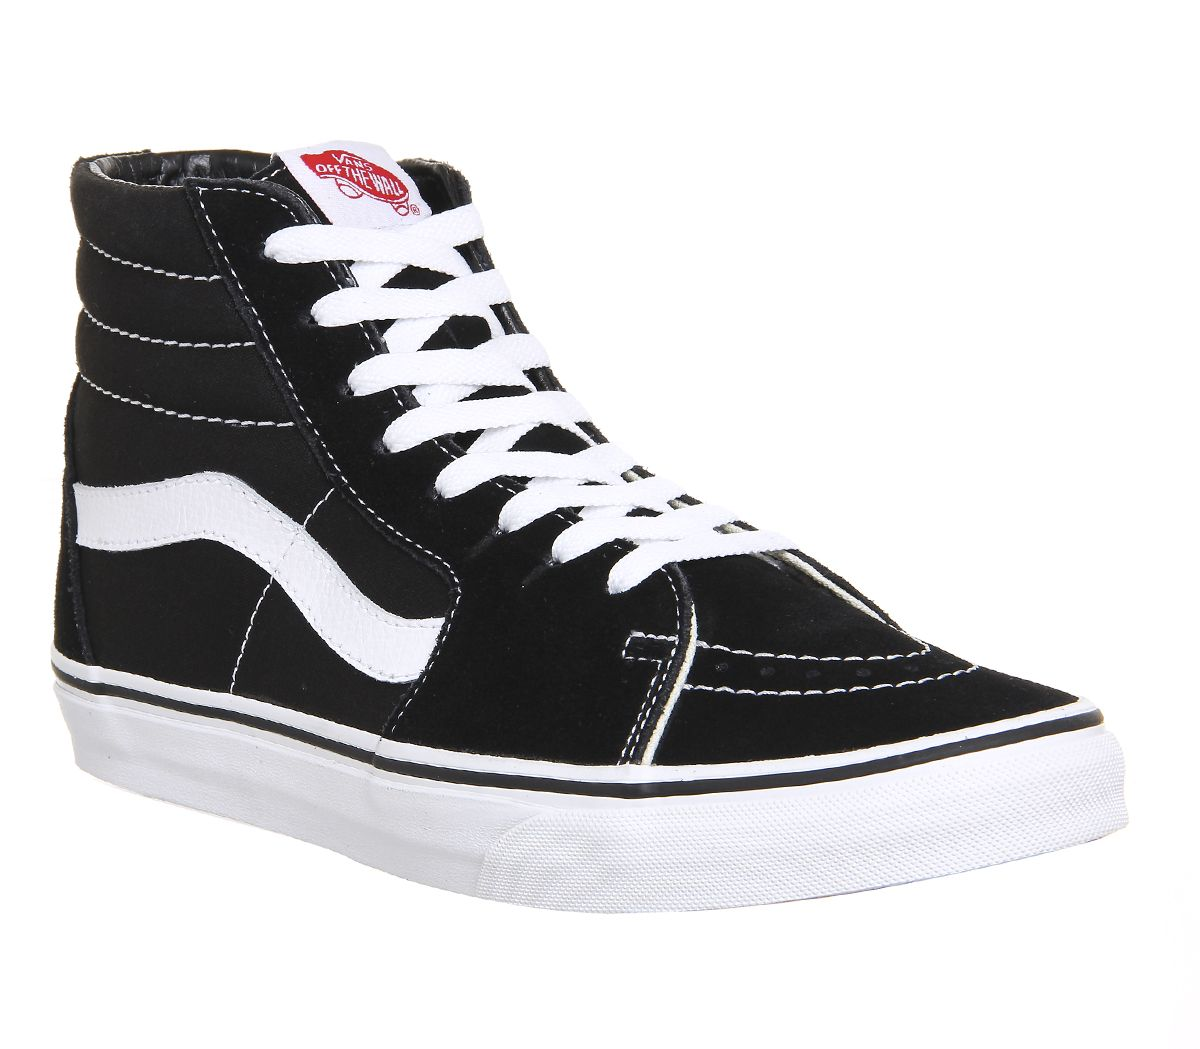 9c92e94d98 Vans Sk8 Hi Black White Canvas - Office Girl